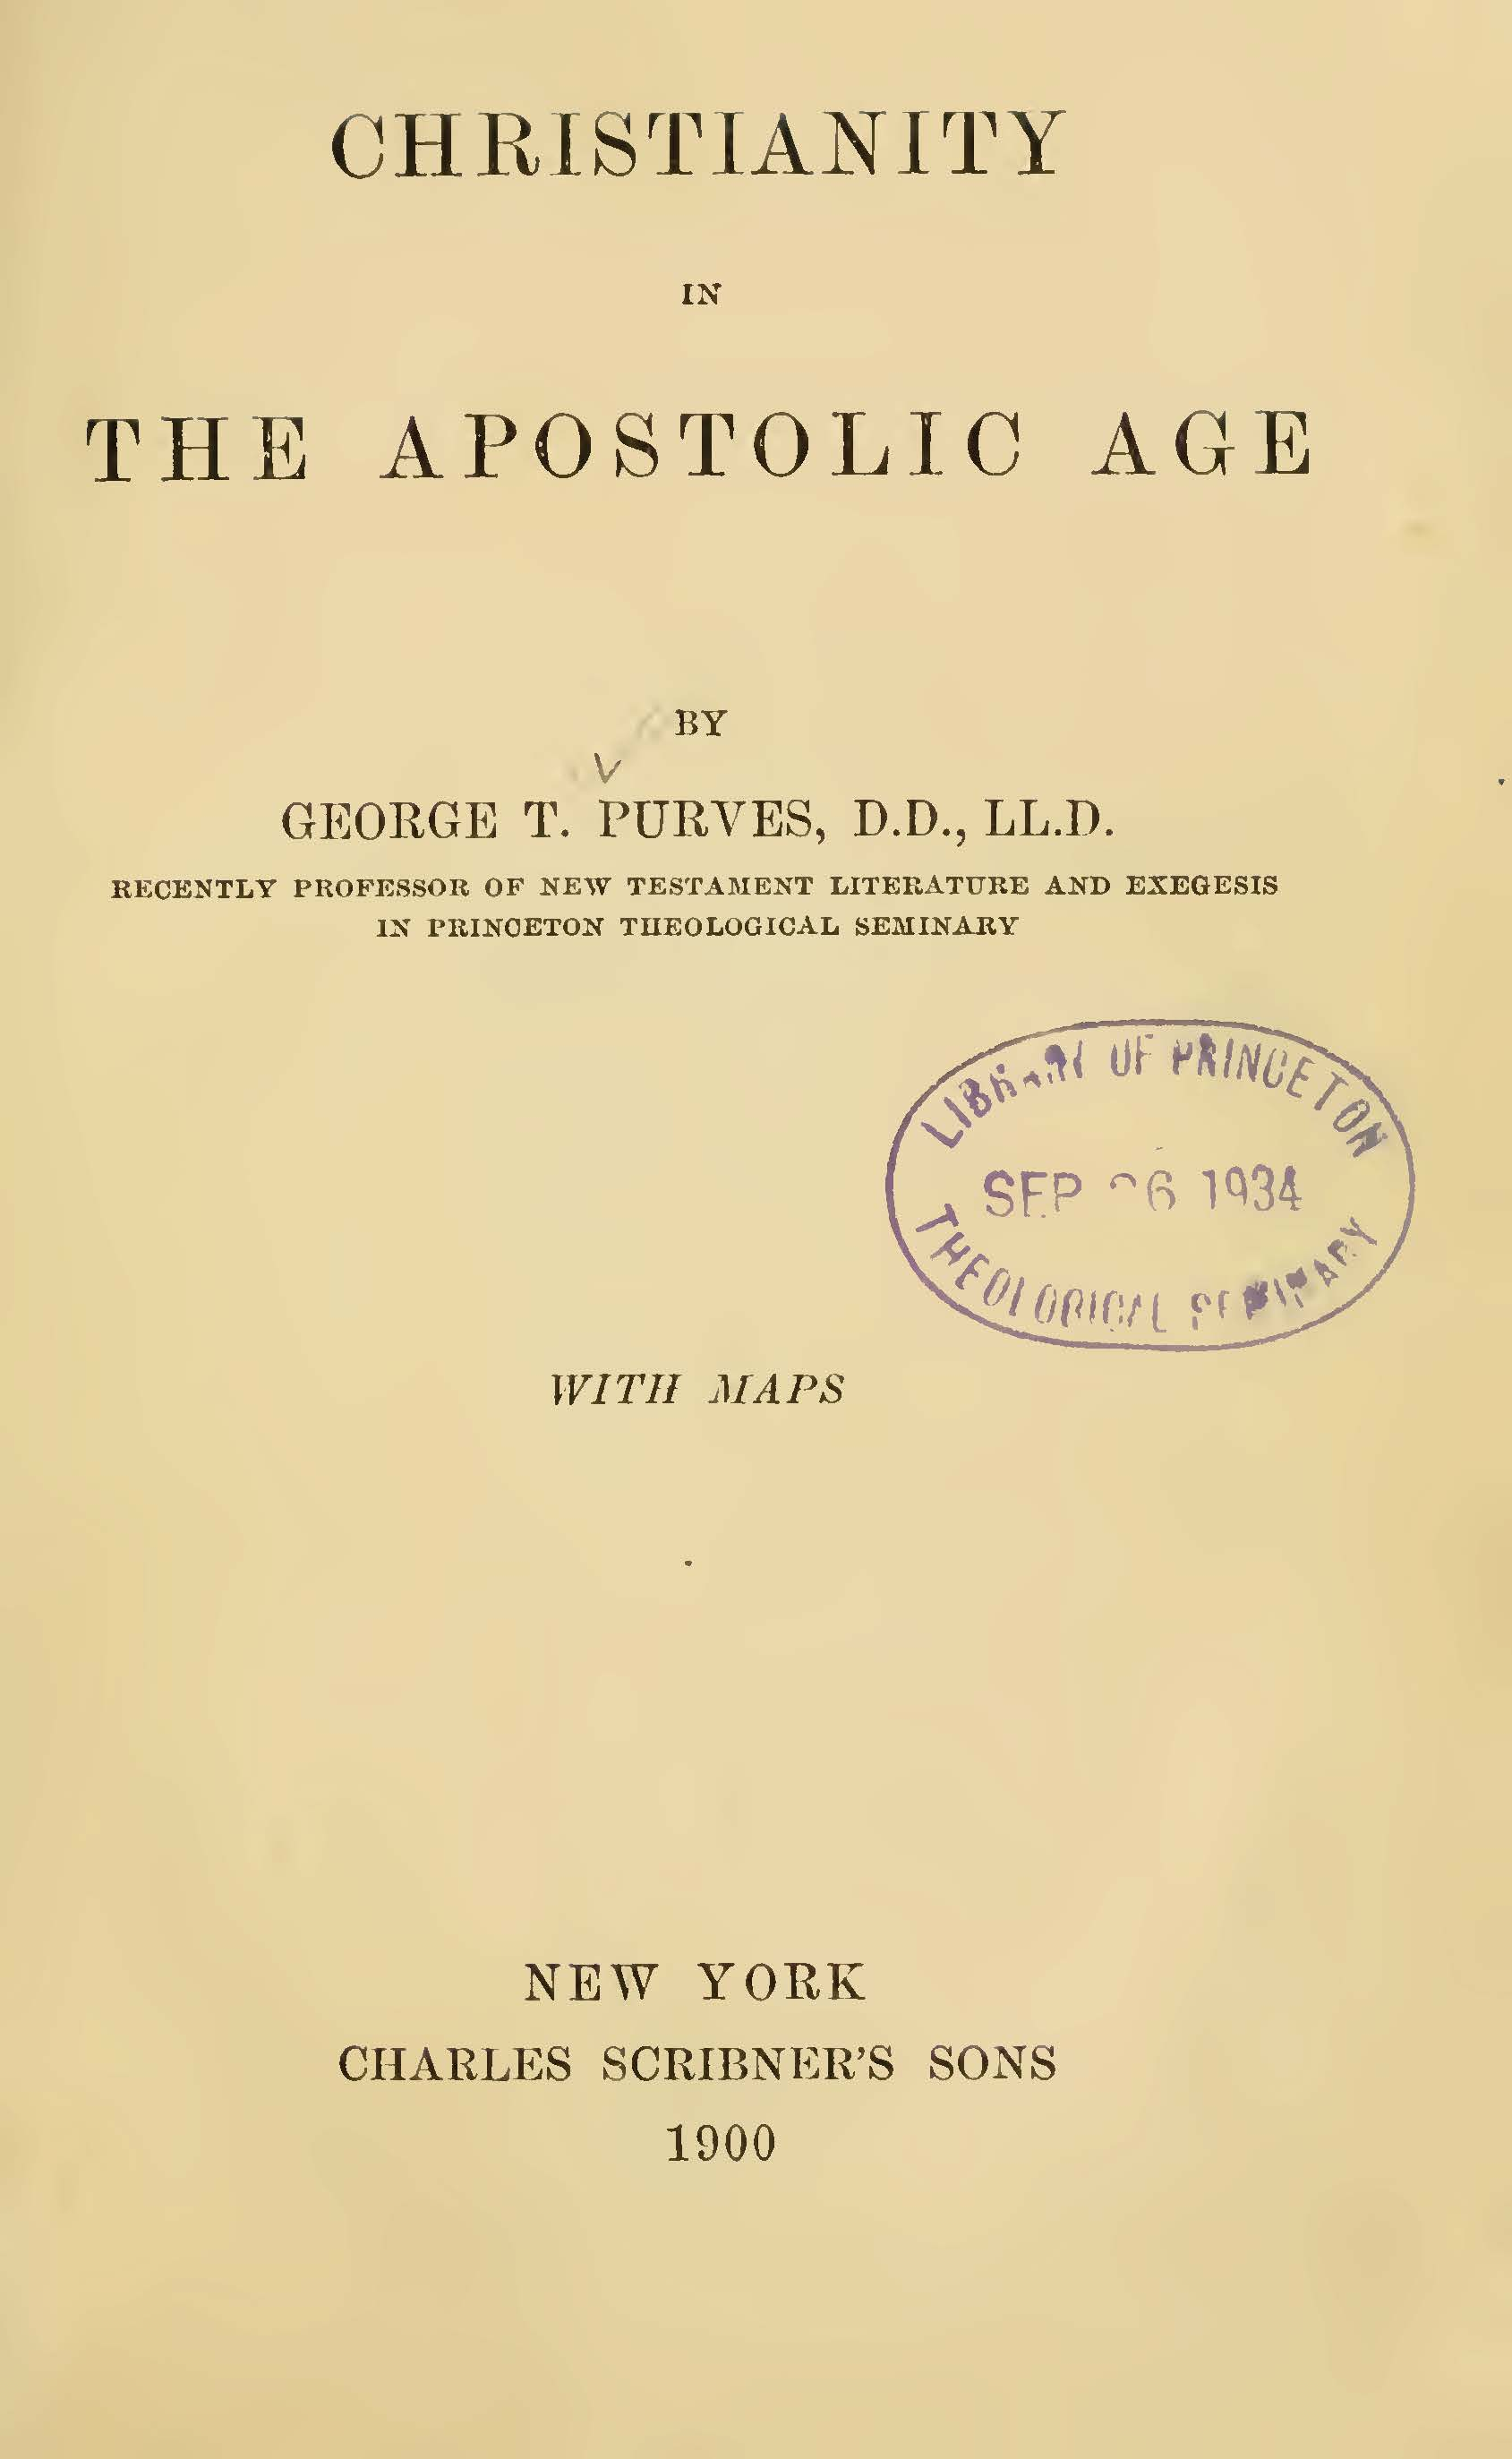 Purves, George Tybout, Christianity in the Apostolic Age Title Page.jpg